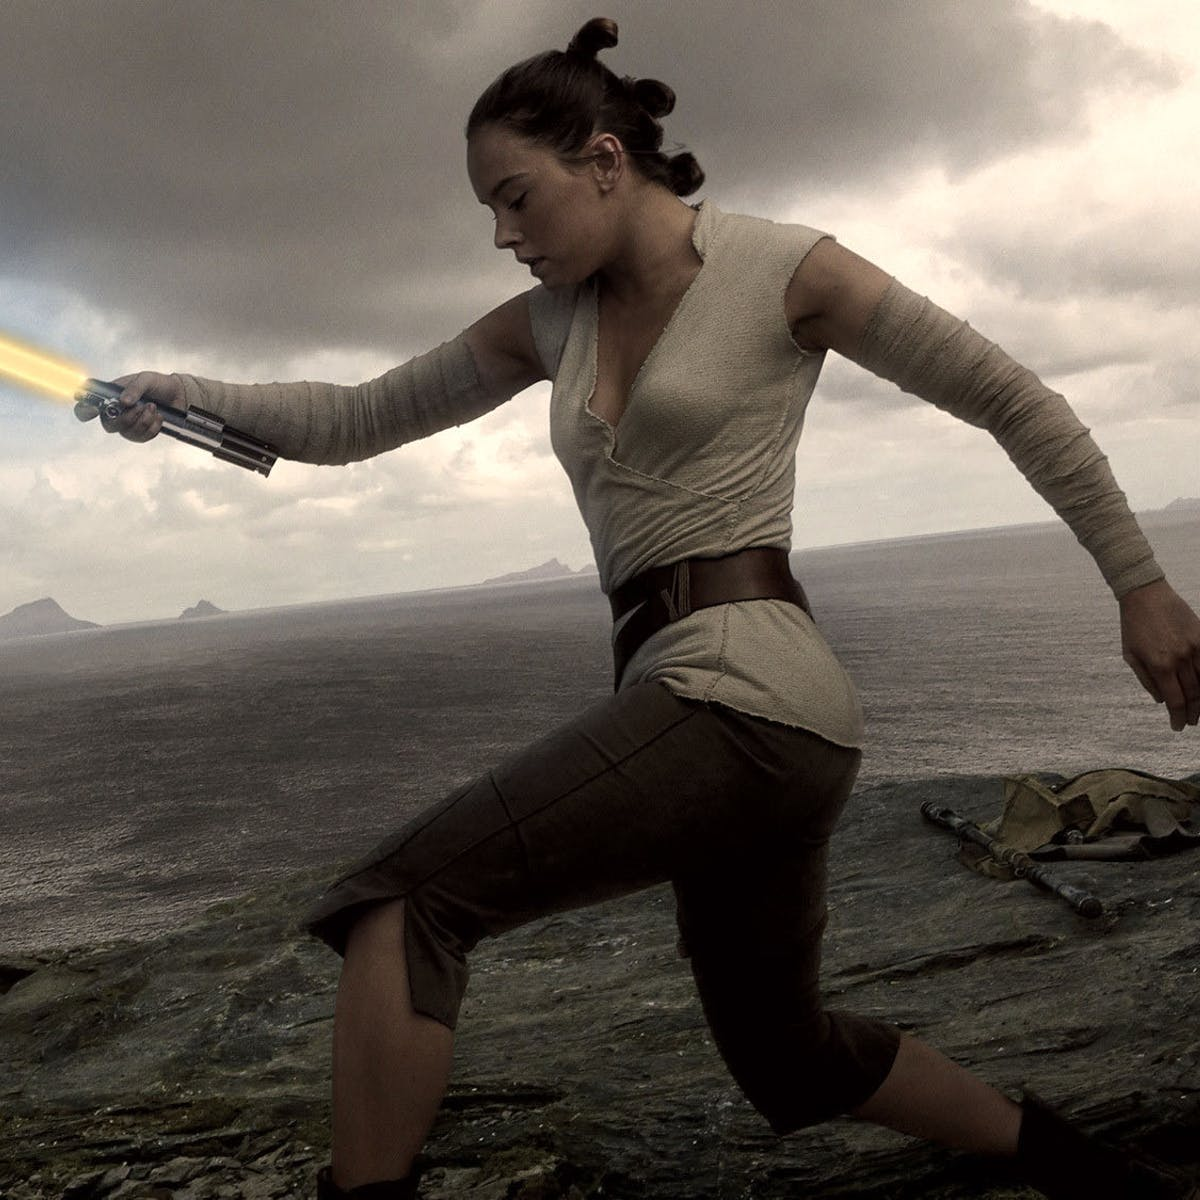 'Rise of Skywalker' theory: Force healing explains a key prequels moment